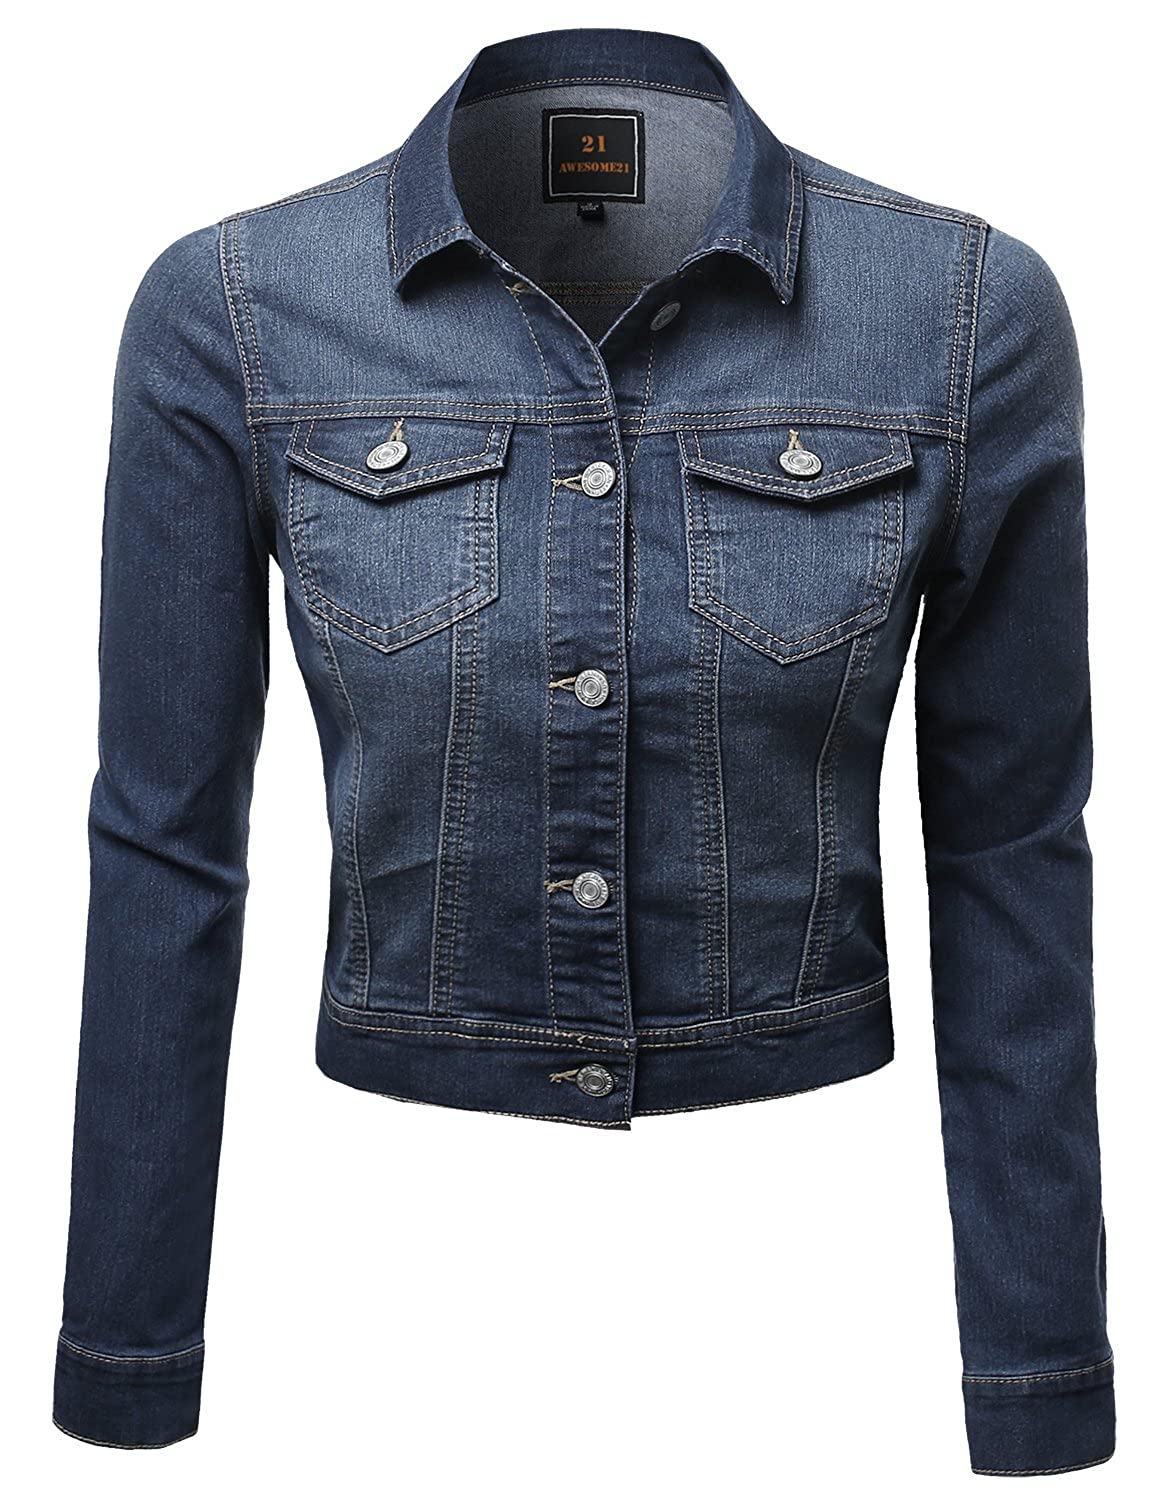 62f0d54e70b Button closure. Tired of cheap stiff denim jacekets? This Great Strechy  denim doesn\'t bother your movement at all! Machine wash cold. Do not  bleach.